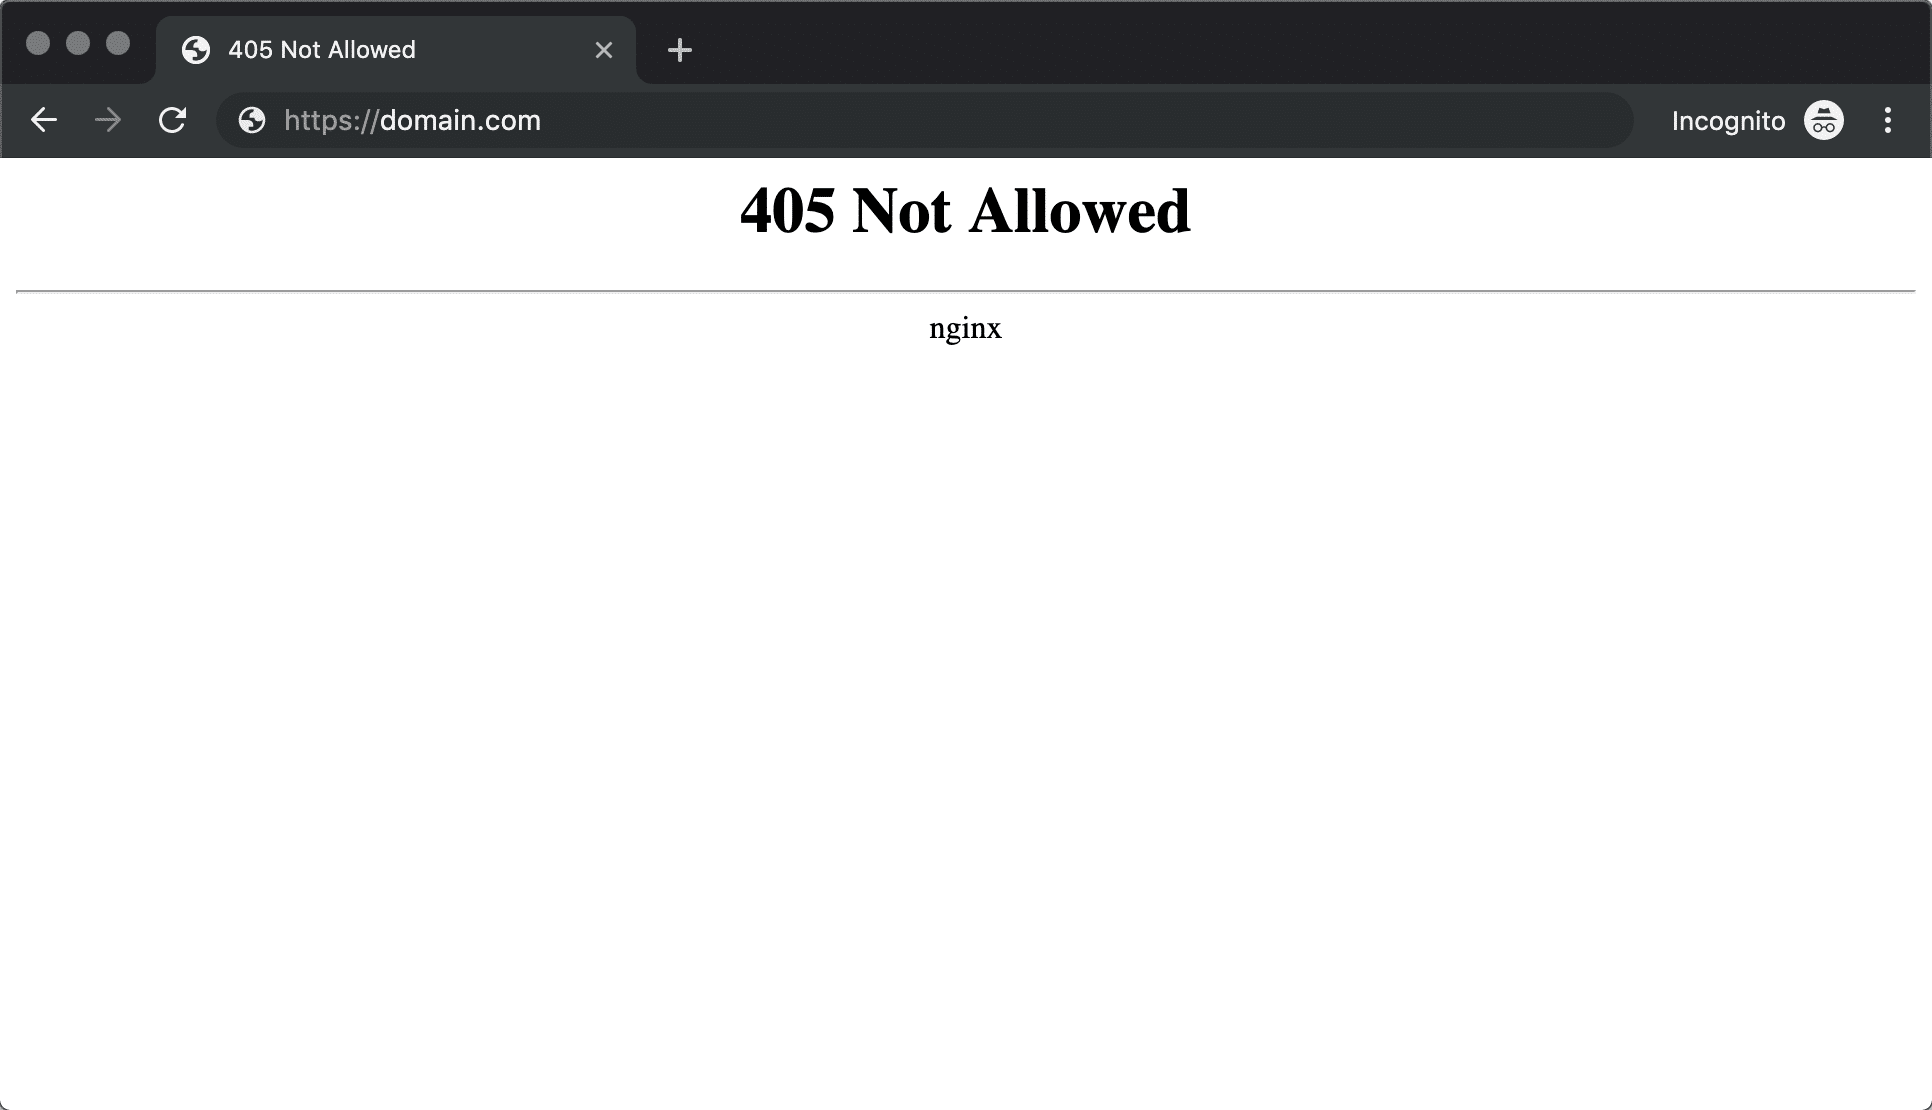 405 Not Allowed foutmelding Nginx in Chrome